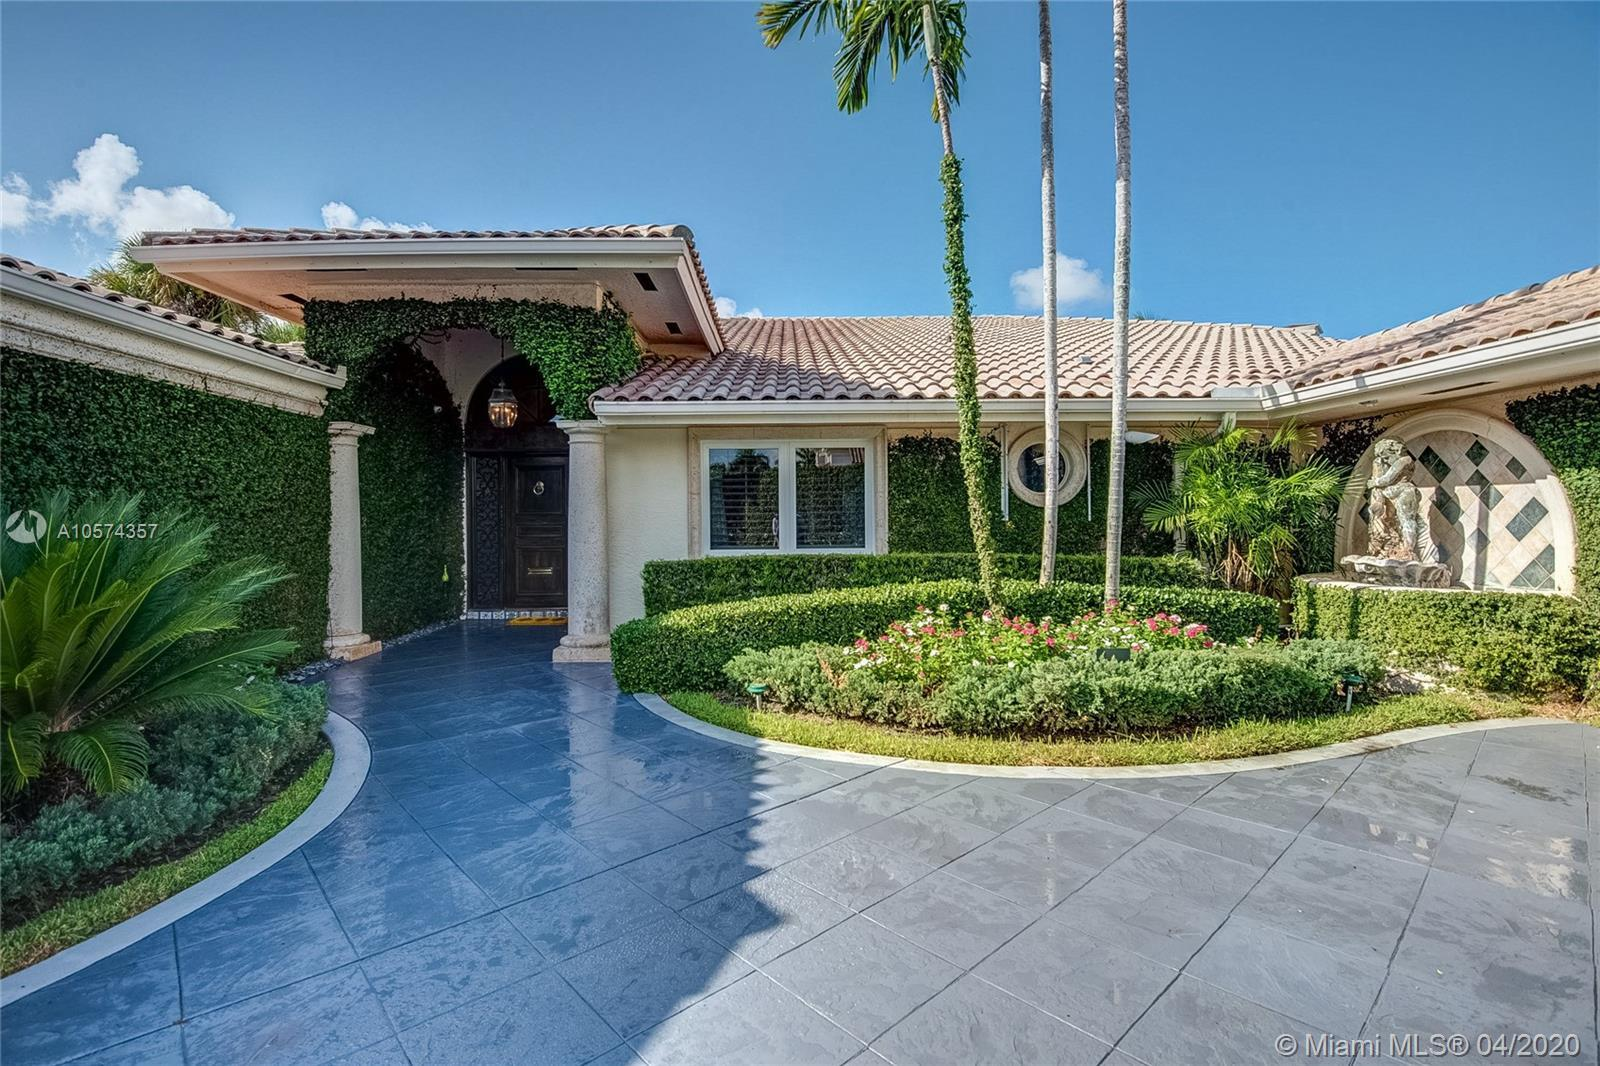 Stunning single story residence directly on the golf course in Royal Palm Yacht & Country Club. This